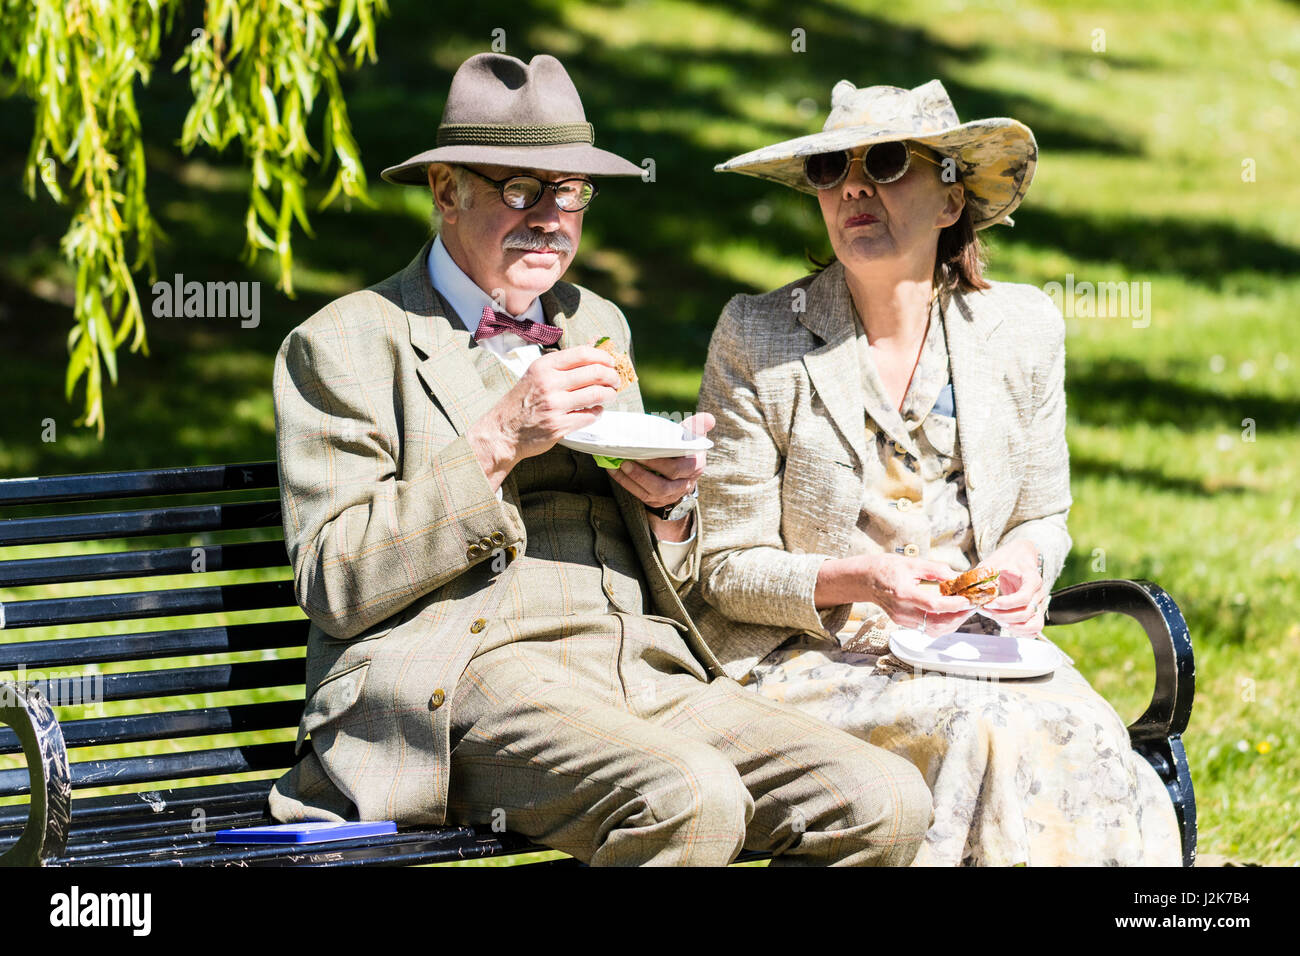 Salute to the 40s event. A senior couple on a park bench pause their Sandwiches to pose for a picture. Both dressed - Stock Image